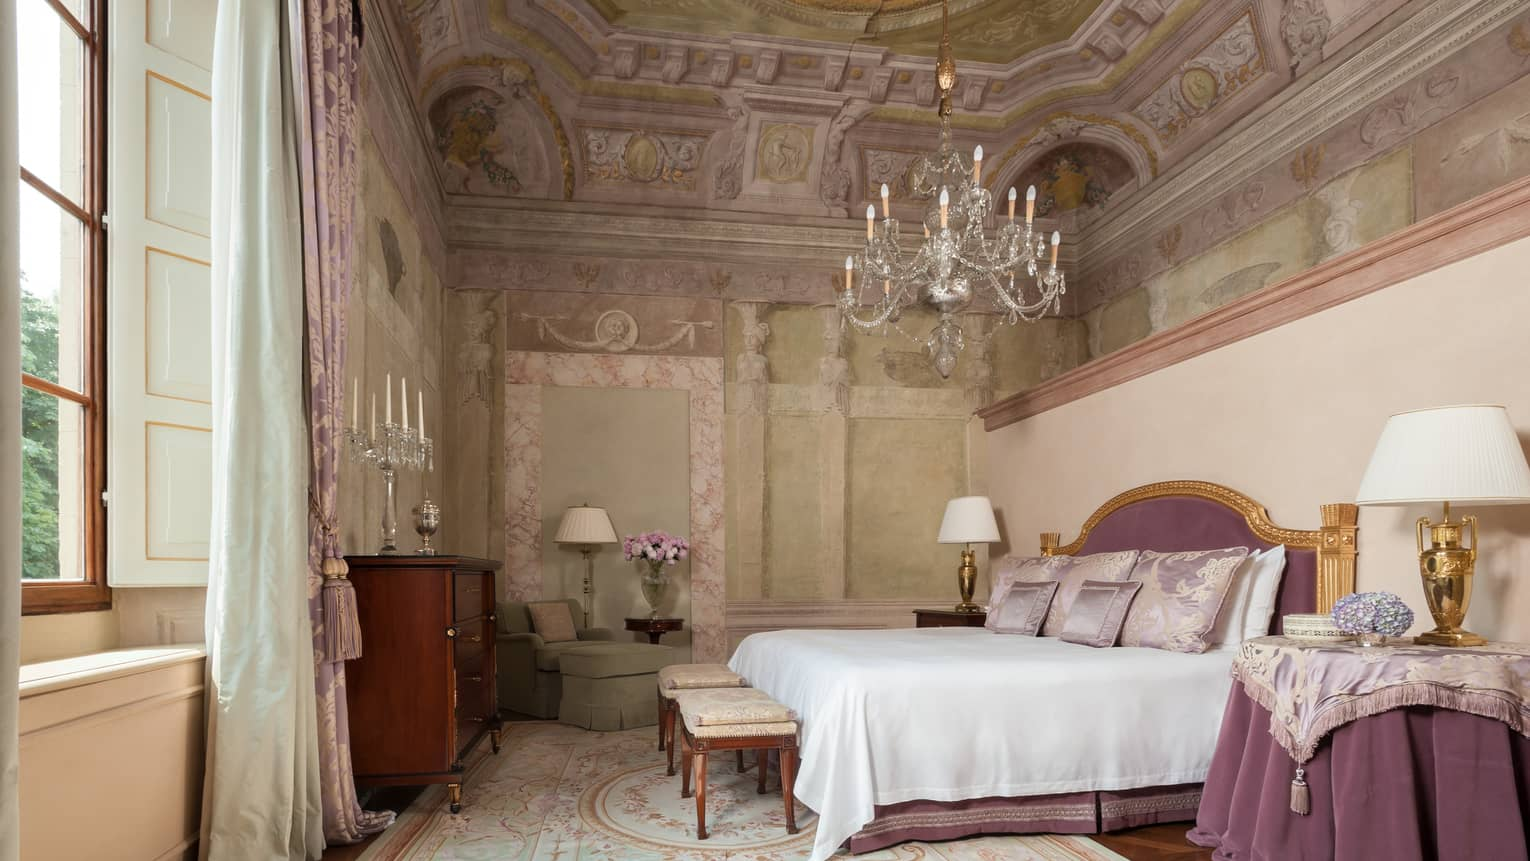 Frescoed Executive Suite bed with purple velvet headboard, nightstand with cloth under chandelier, vaulted ceiling